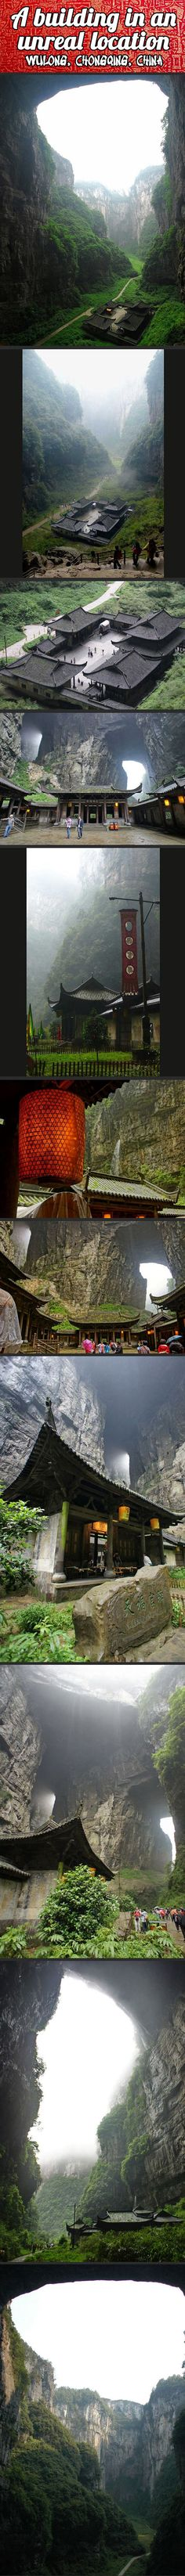 Unreal location in China…